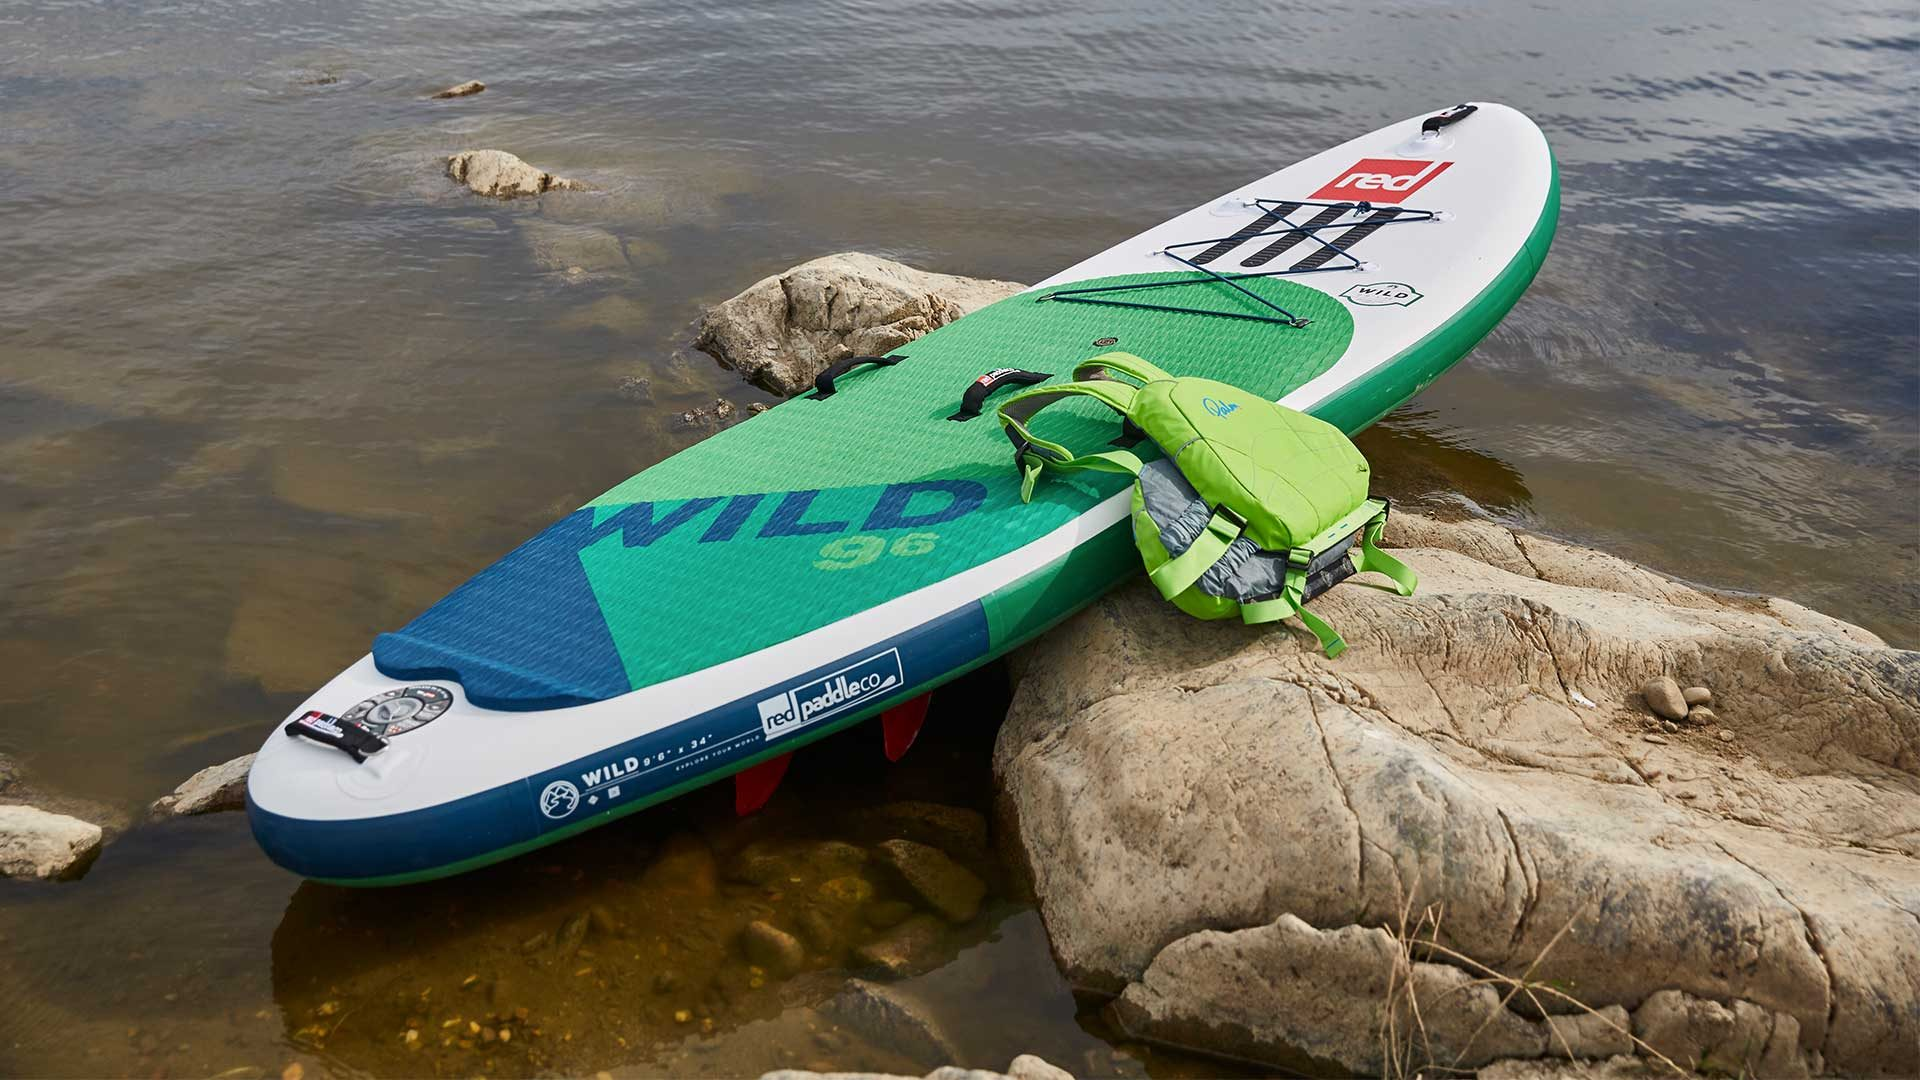 redpaddleco-96-wild-msl-inflatable-paddle-board-desktop-gallery-fins